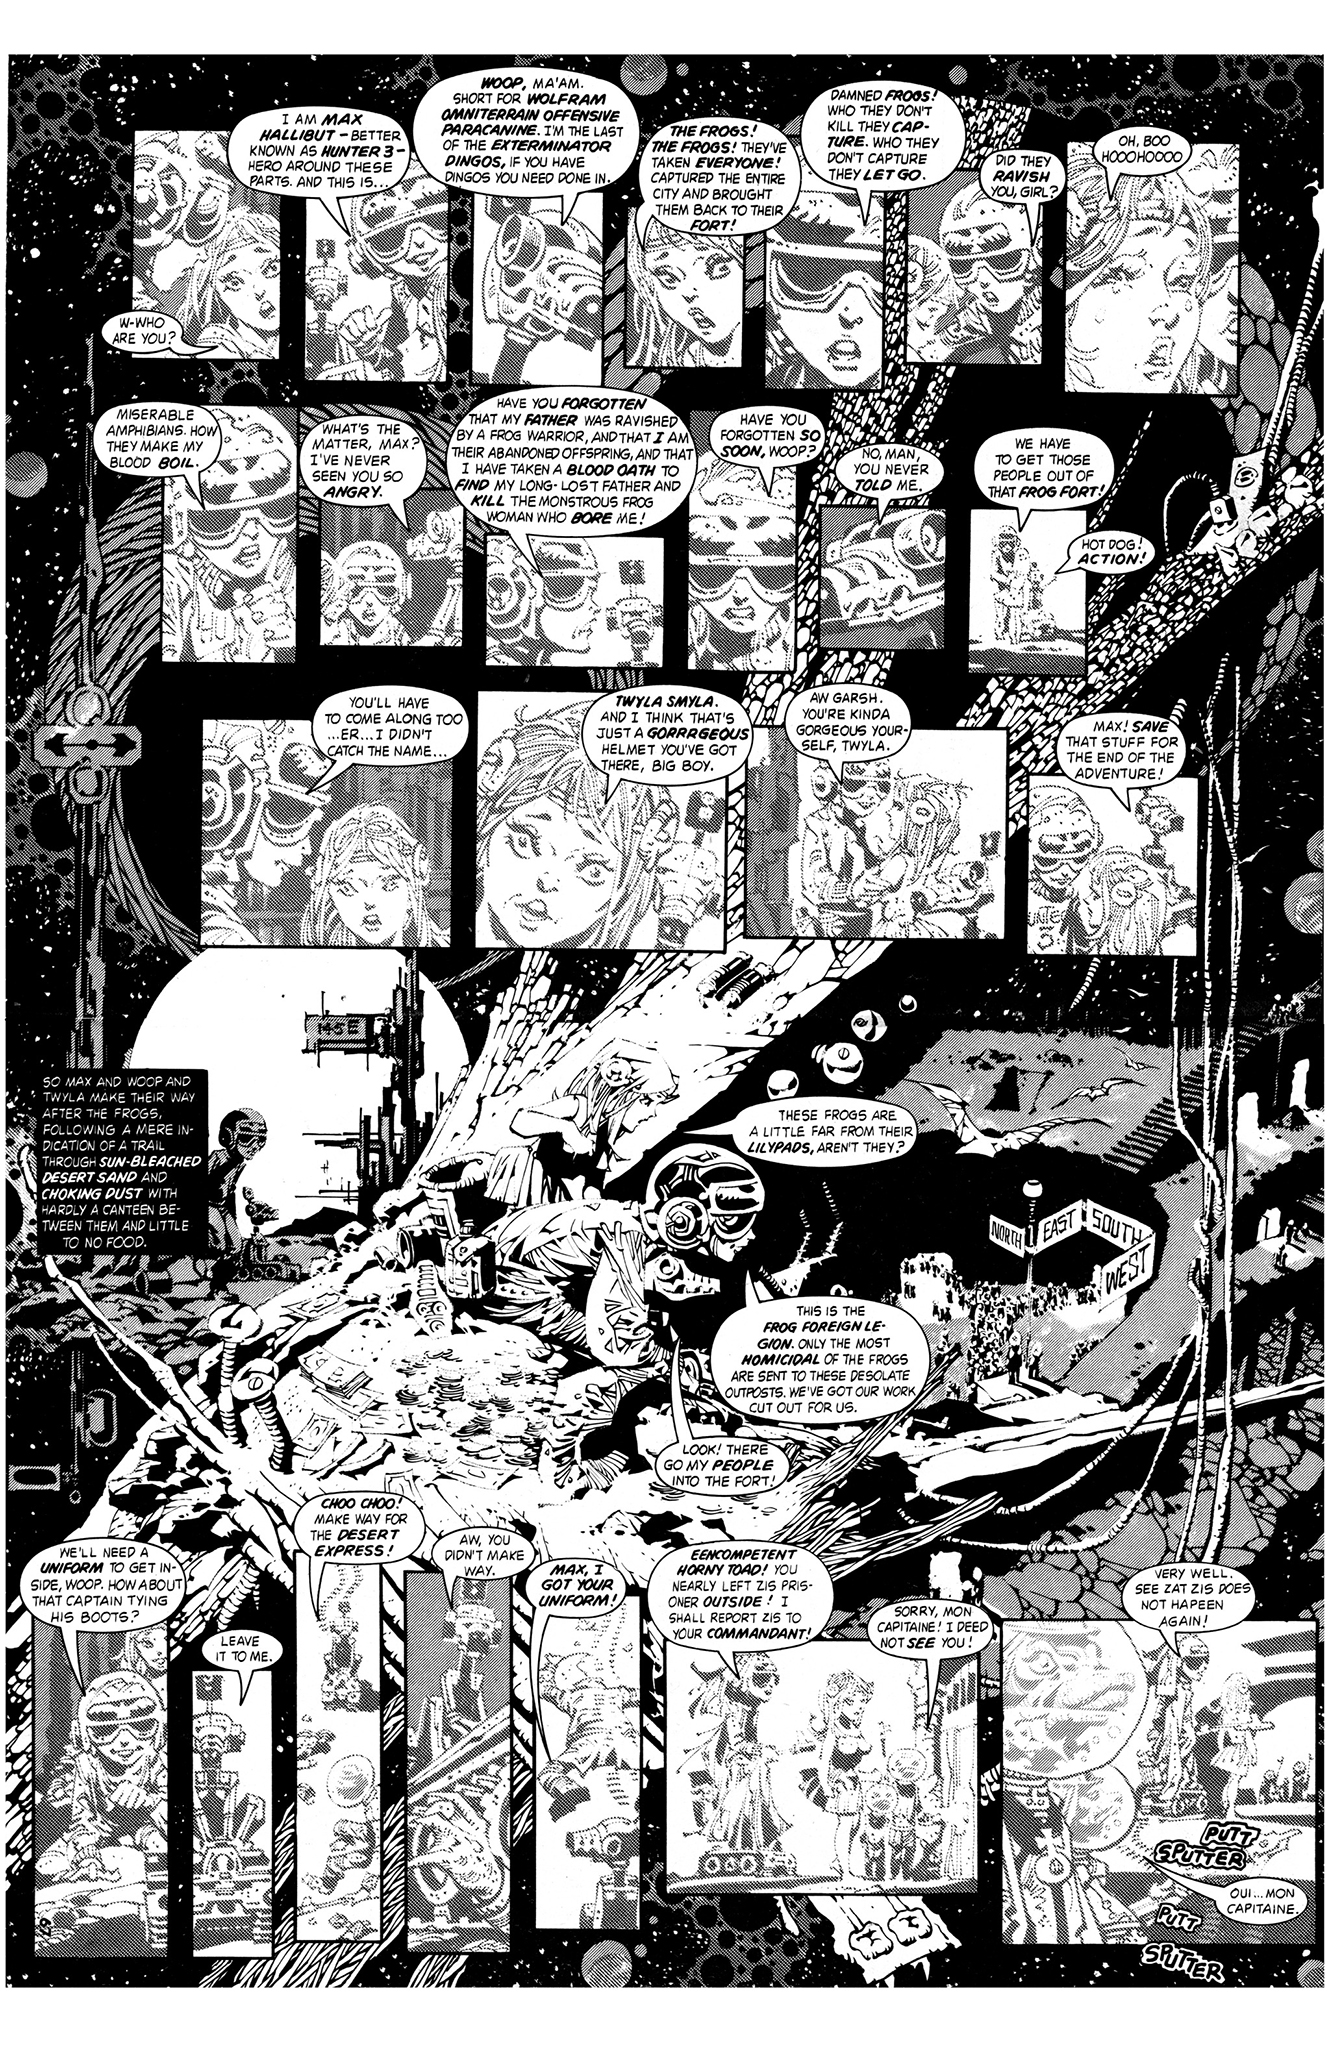 Read online Eerie Archives comic -  Issue # TPB 18 - 144